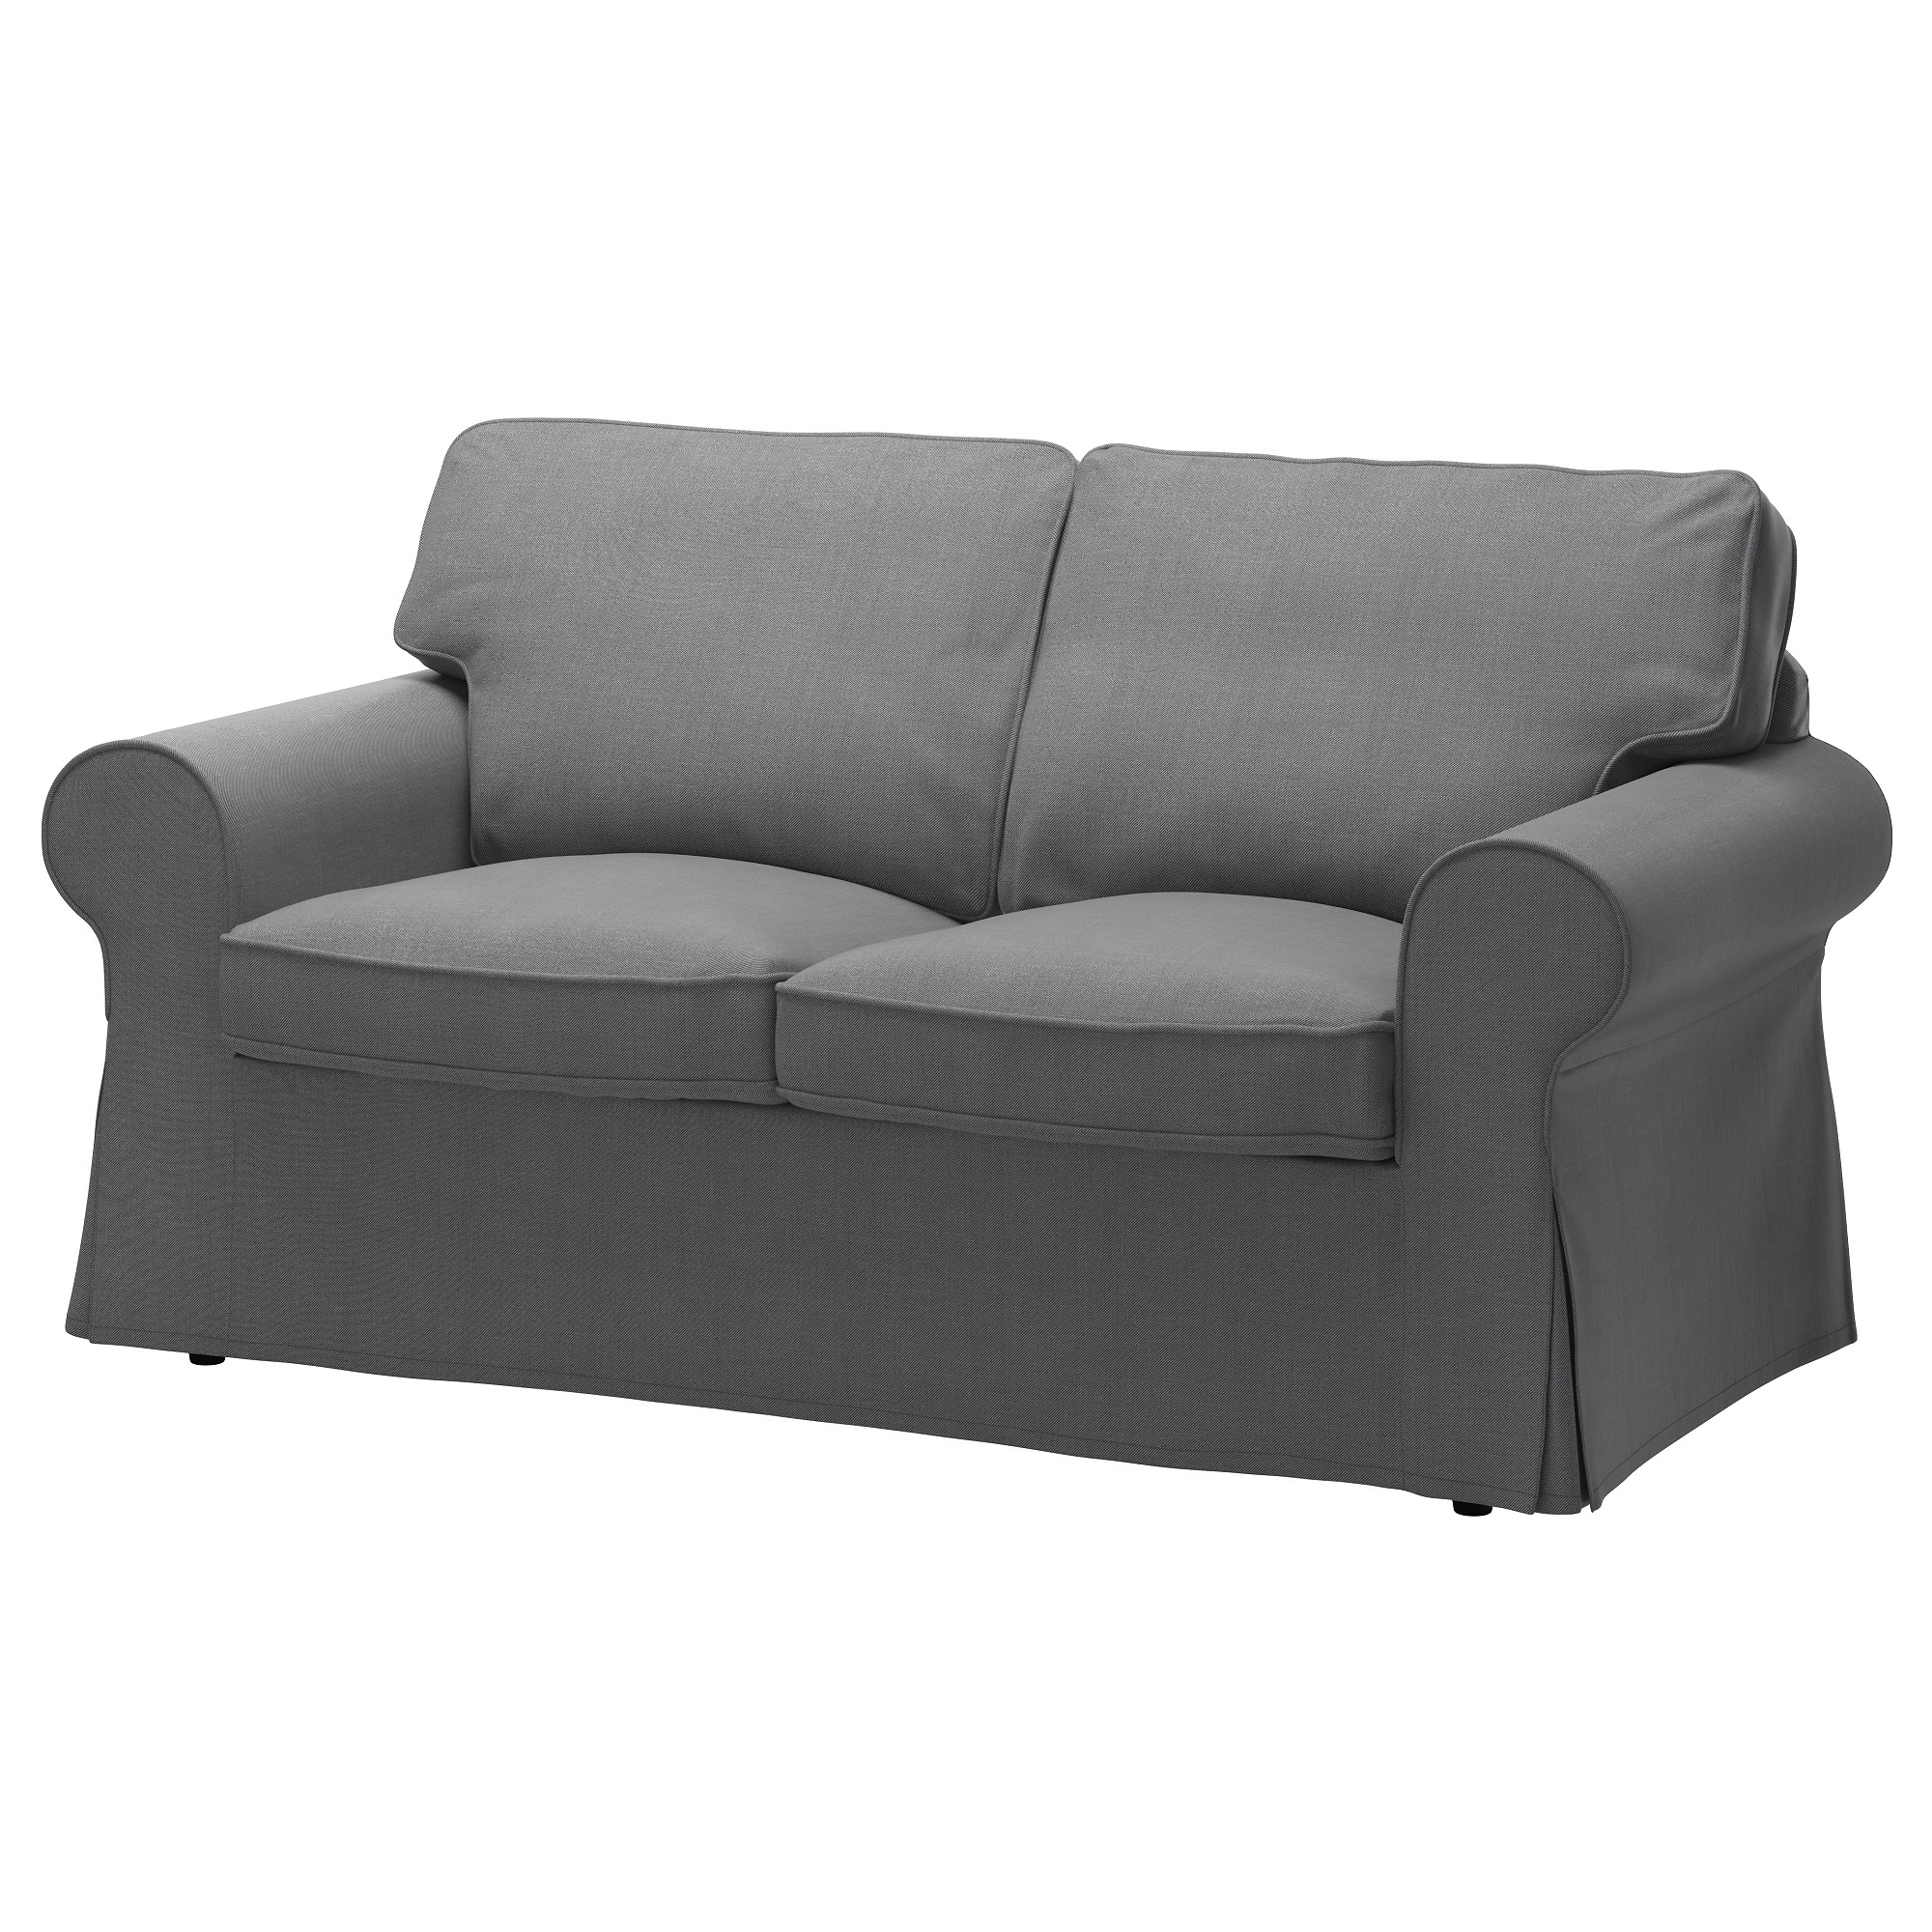 Ektorp Ikea With Sofas With Removable Covers (Image 3 of 15)